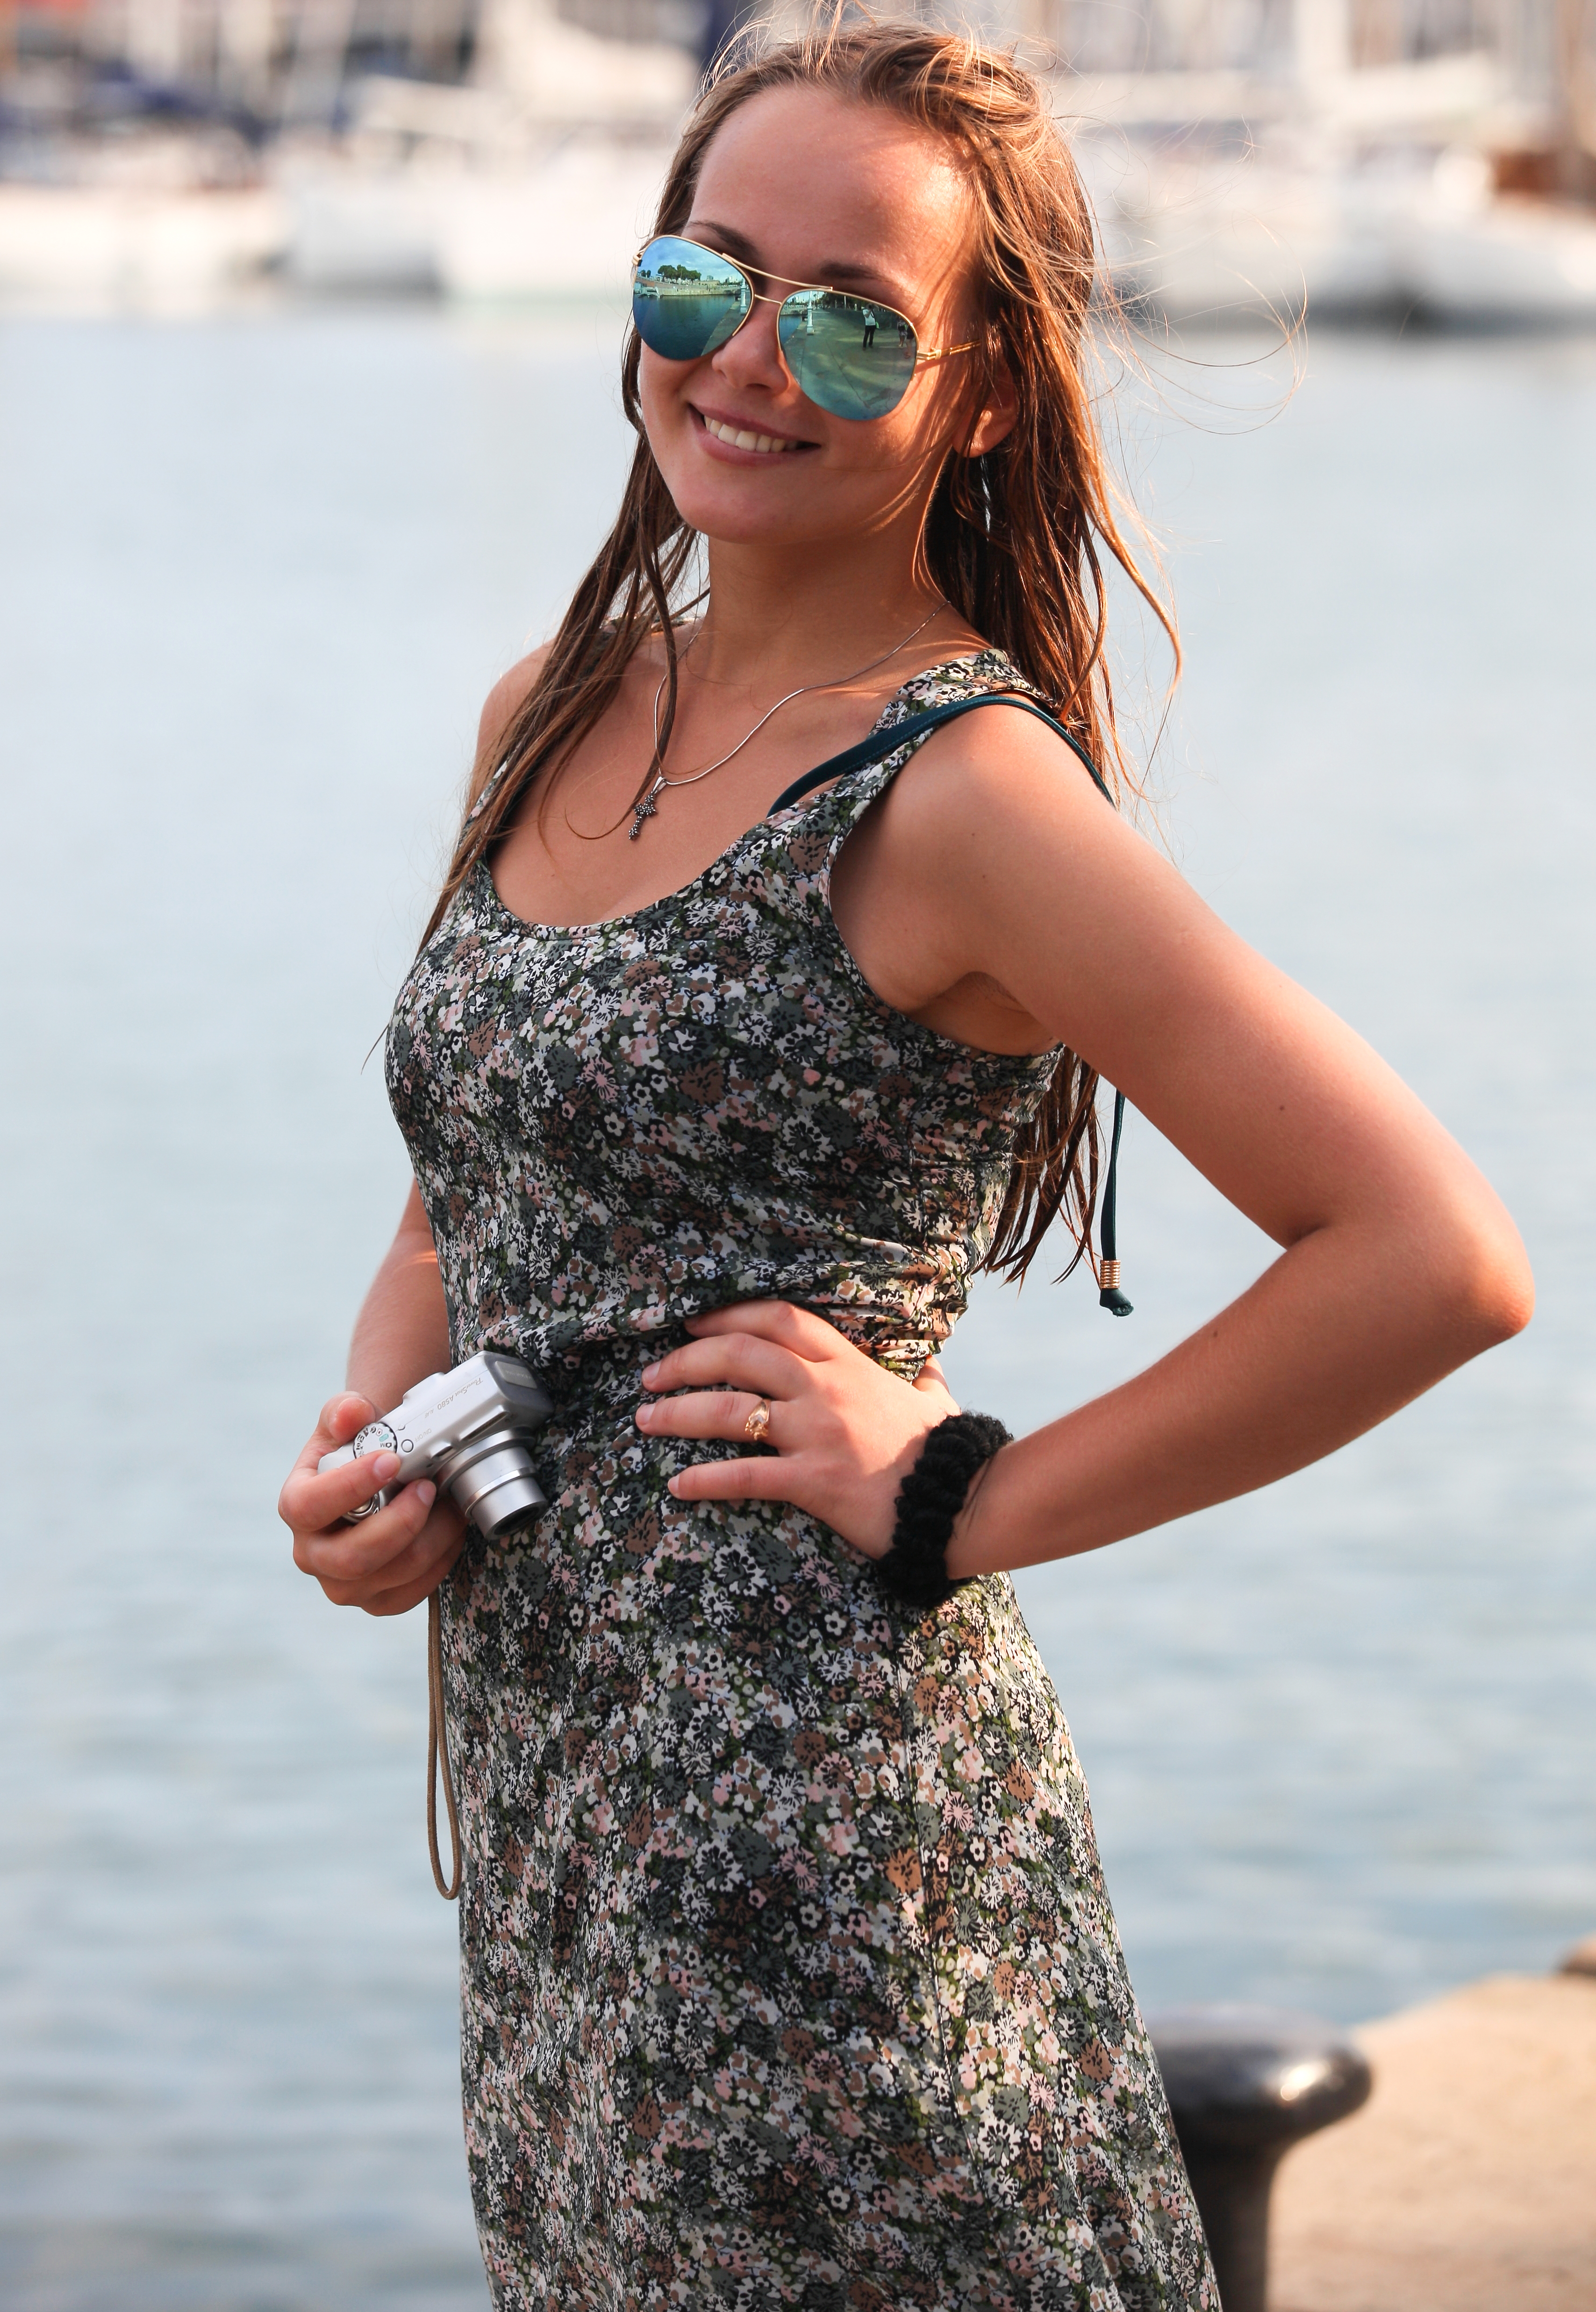 a beautiful girl holding a camera, photographed in Barcelona, Catalonia, Spain in August 2013, portrait 10